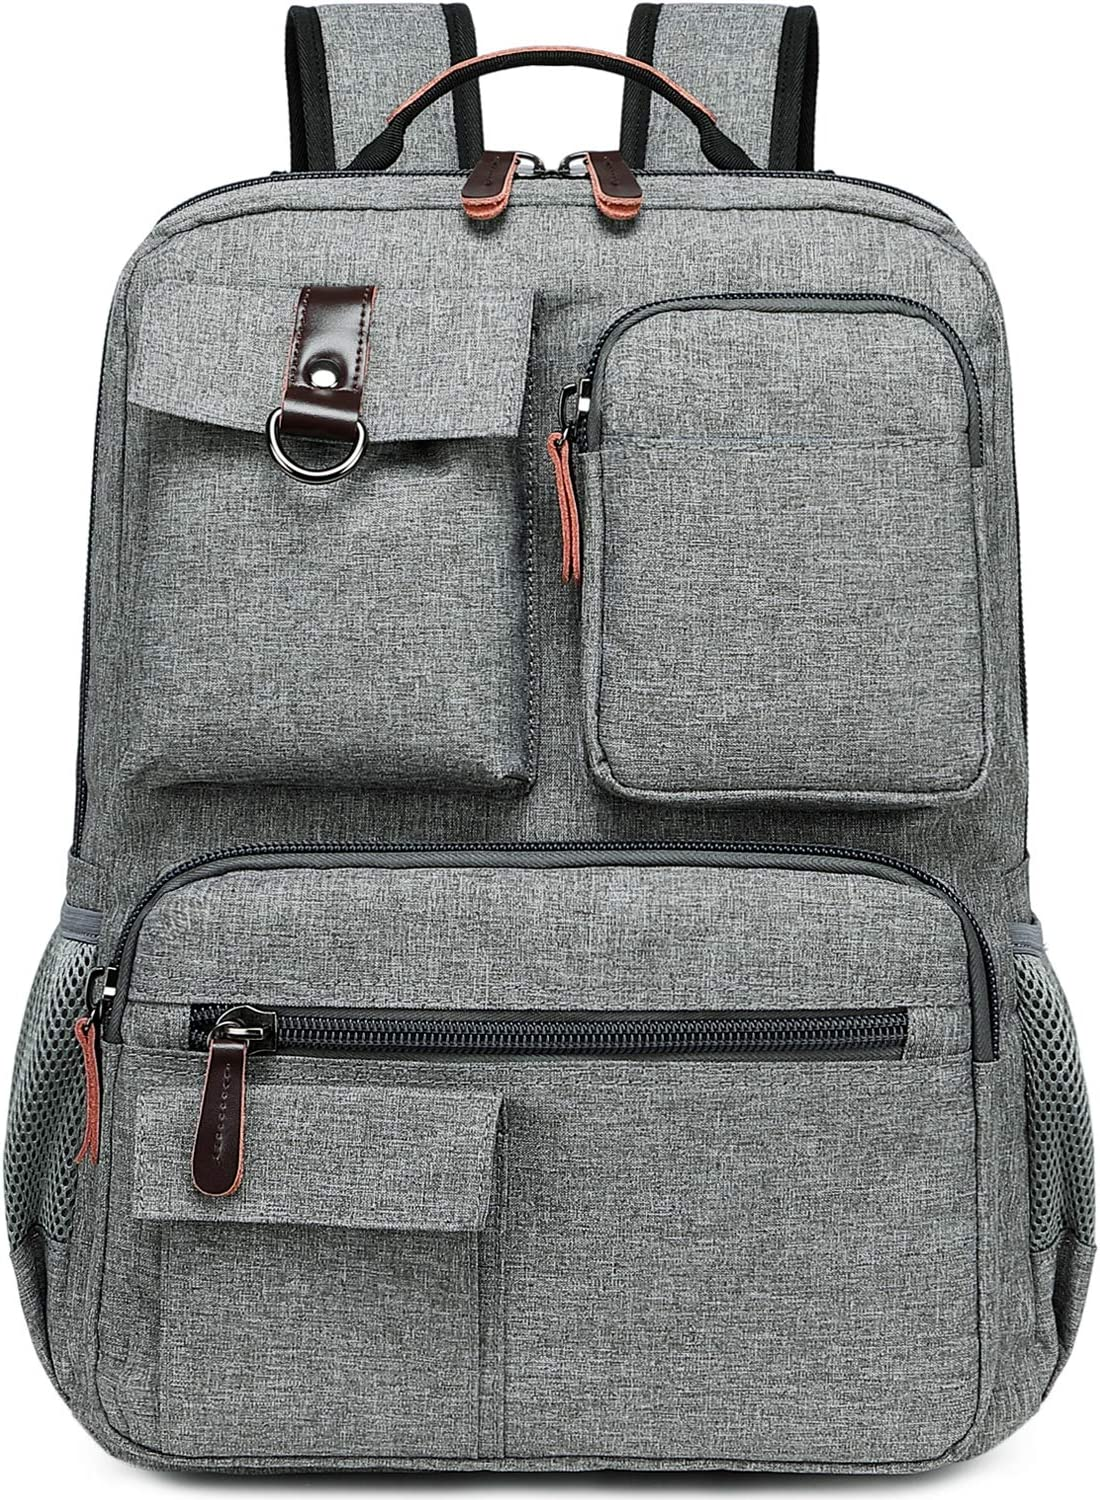 School Backpack Vintage Laptop Backpacks Men Women Rucksack Bookbags (Grey-1)